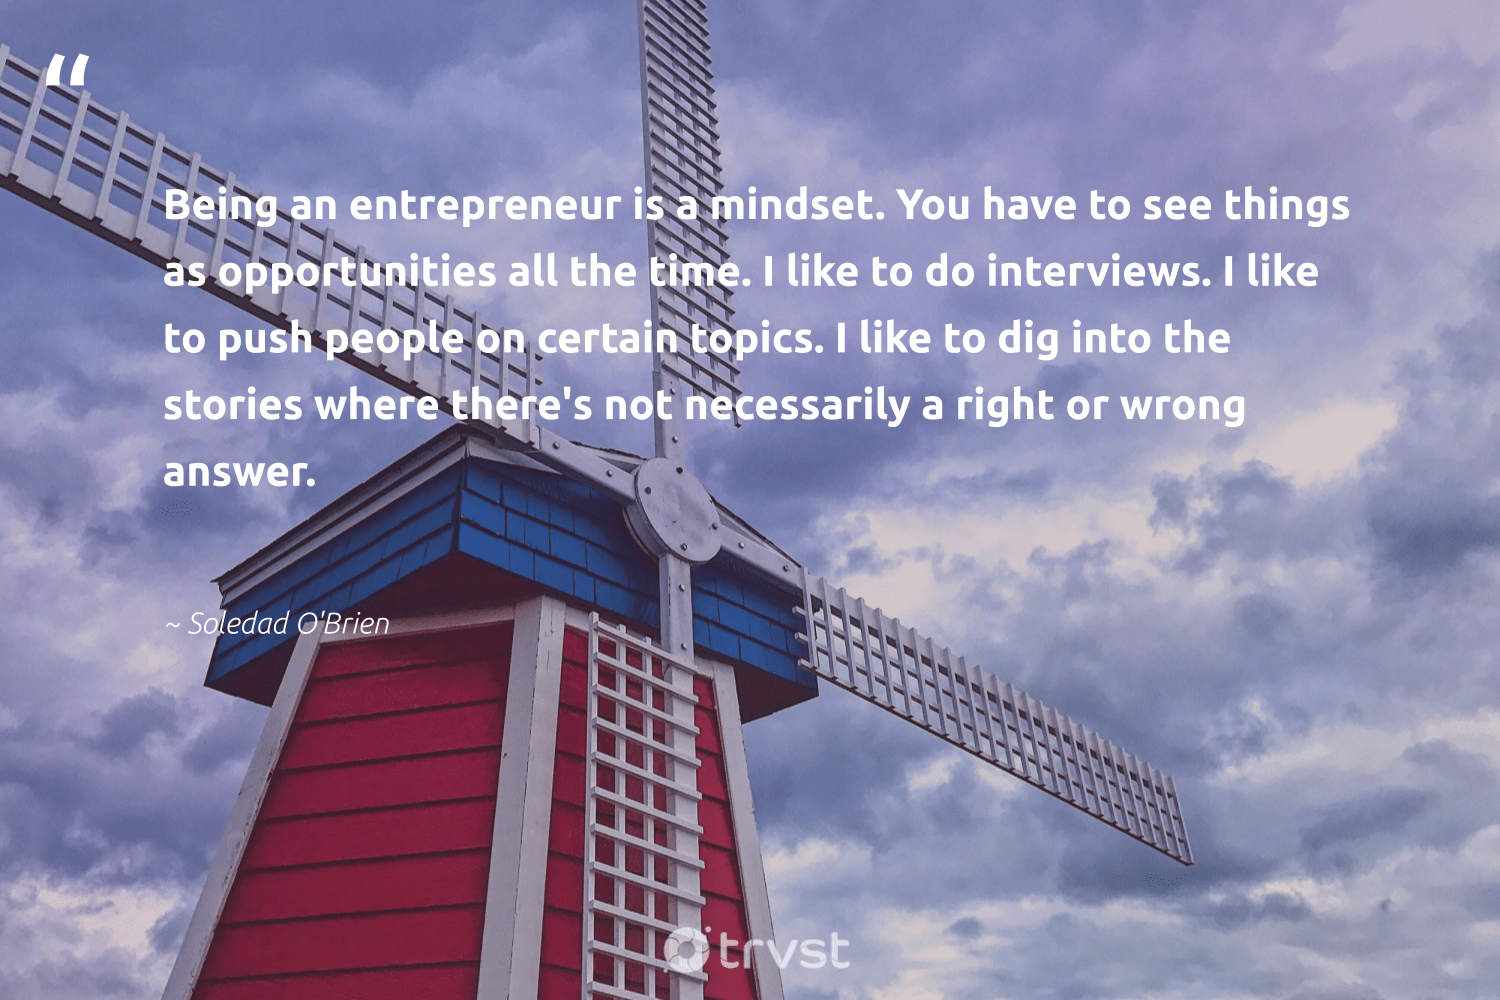 """Being an entrepreneur is a mindset. You have to see things as opportunities all the time. I like to do interviews. I like to push people on certain topics. I like to dig into the stories where there's not necessarily a right or wrong answer.""  - Soledad O'Brien #trvst #quotes #mindset #entrepreneur #entrepreneurmindset #betterplanet #togetherwecan #dosomething #meditation #makeadifference #nevergiveup #gogreen"